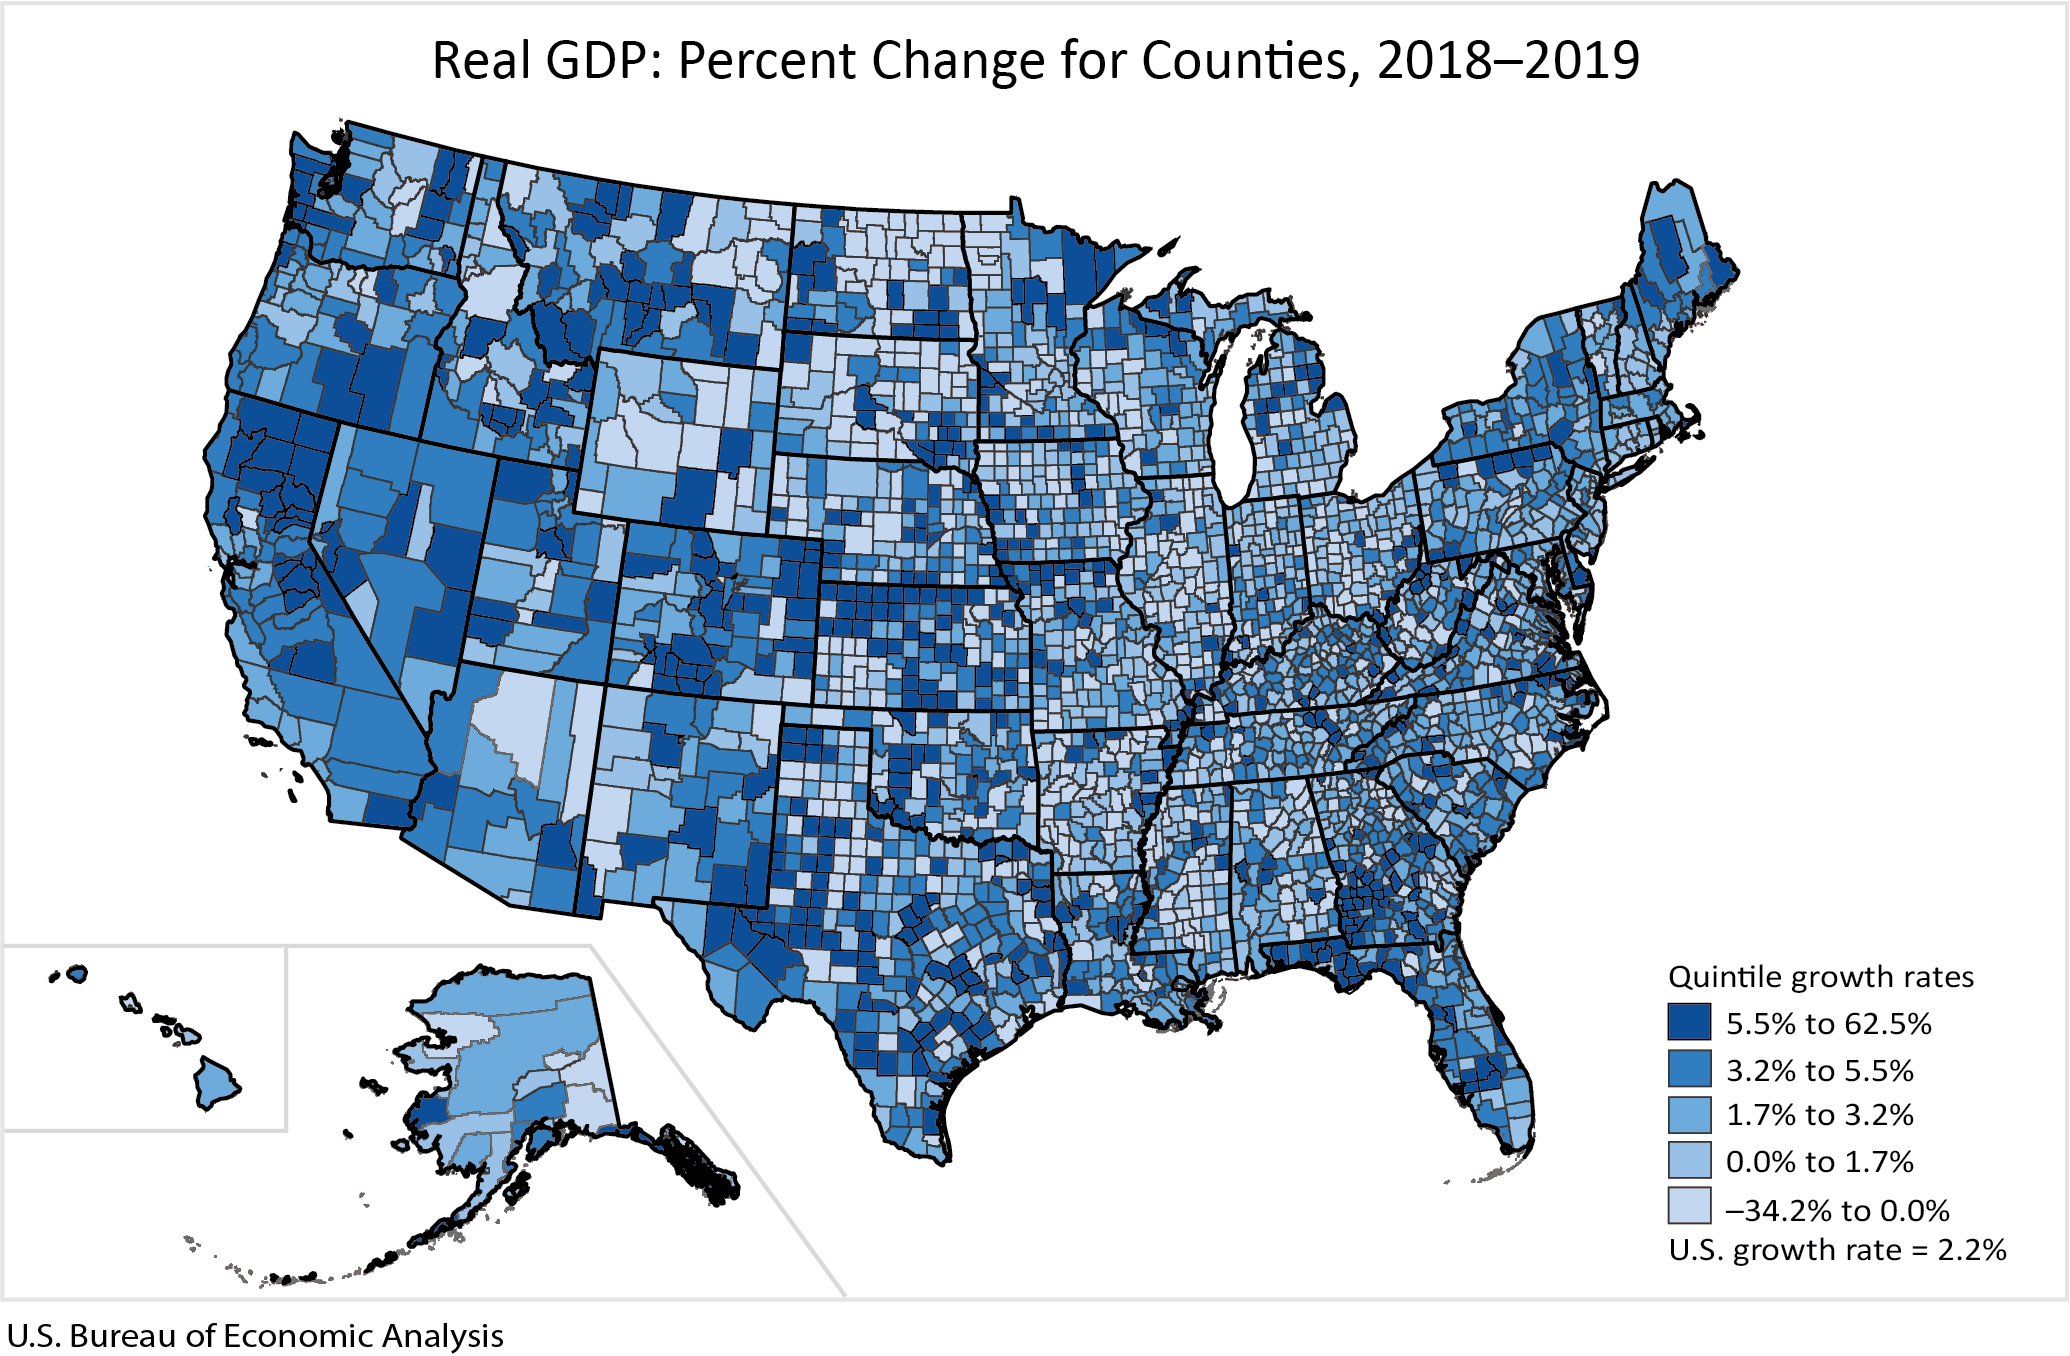 Real GDP: Percent Change for Counties, 2018-2019